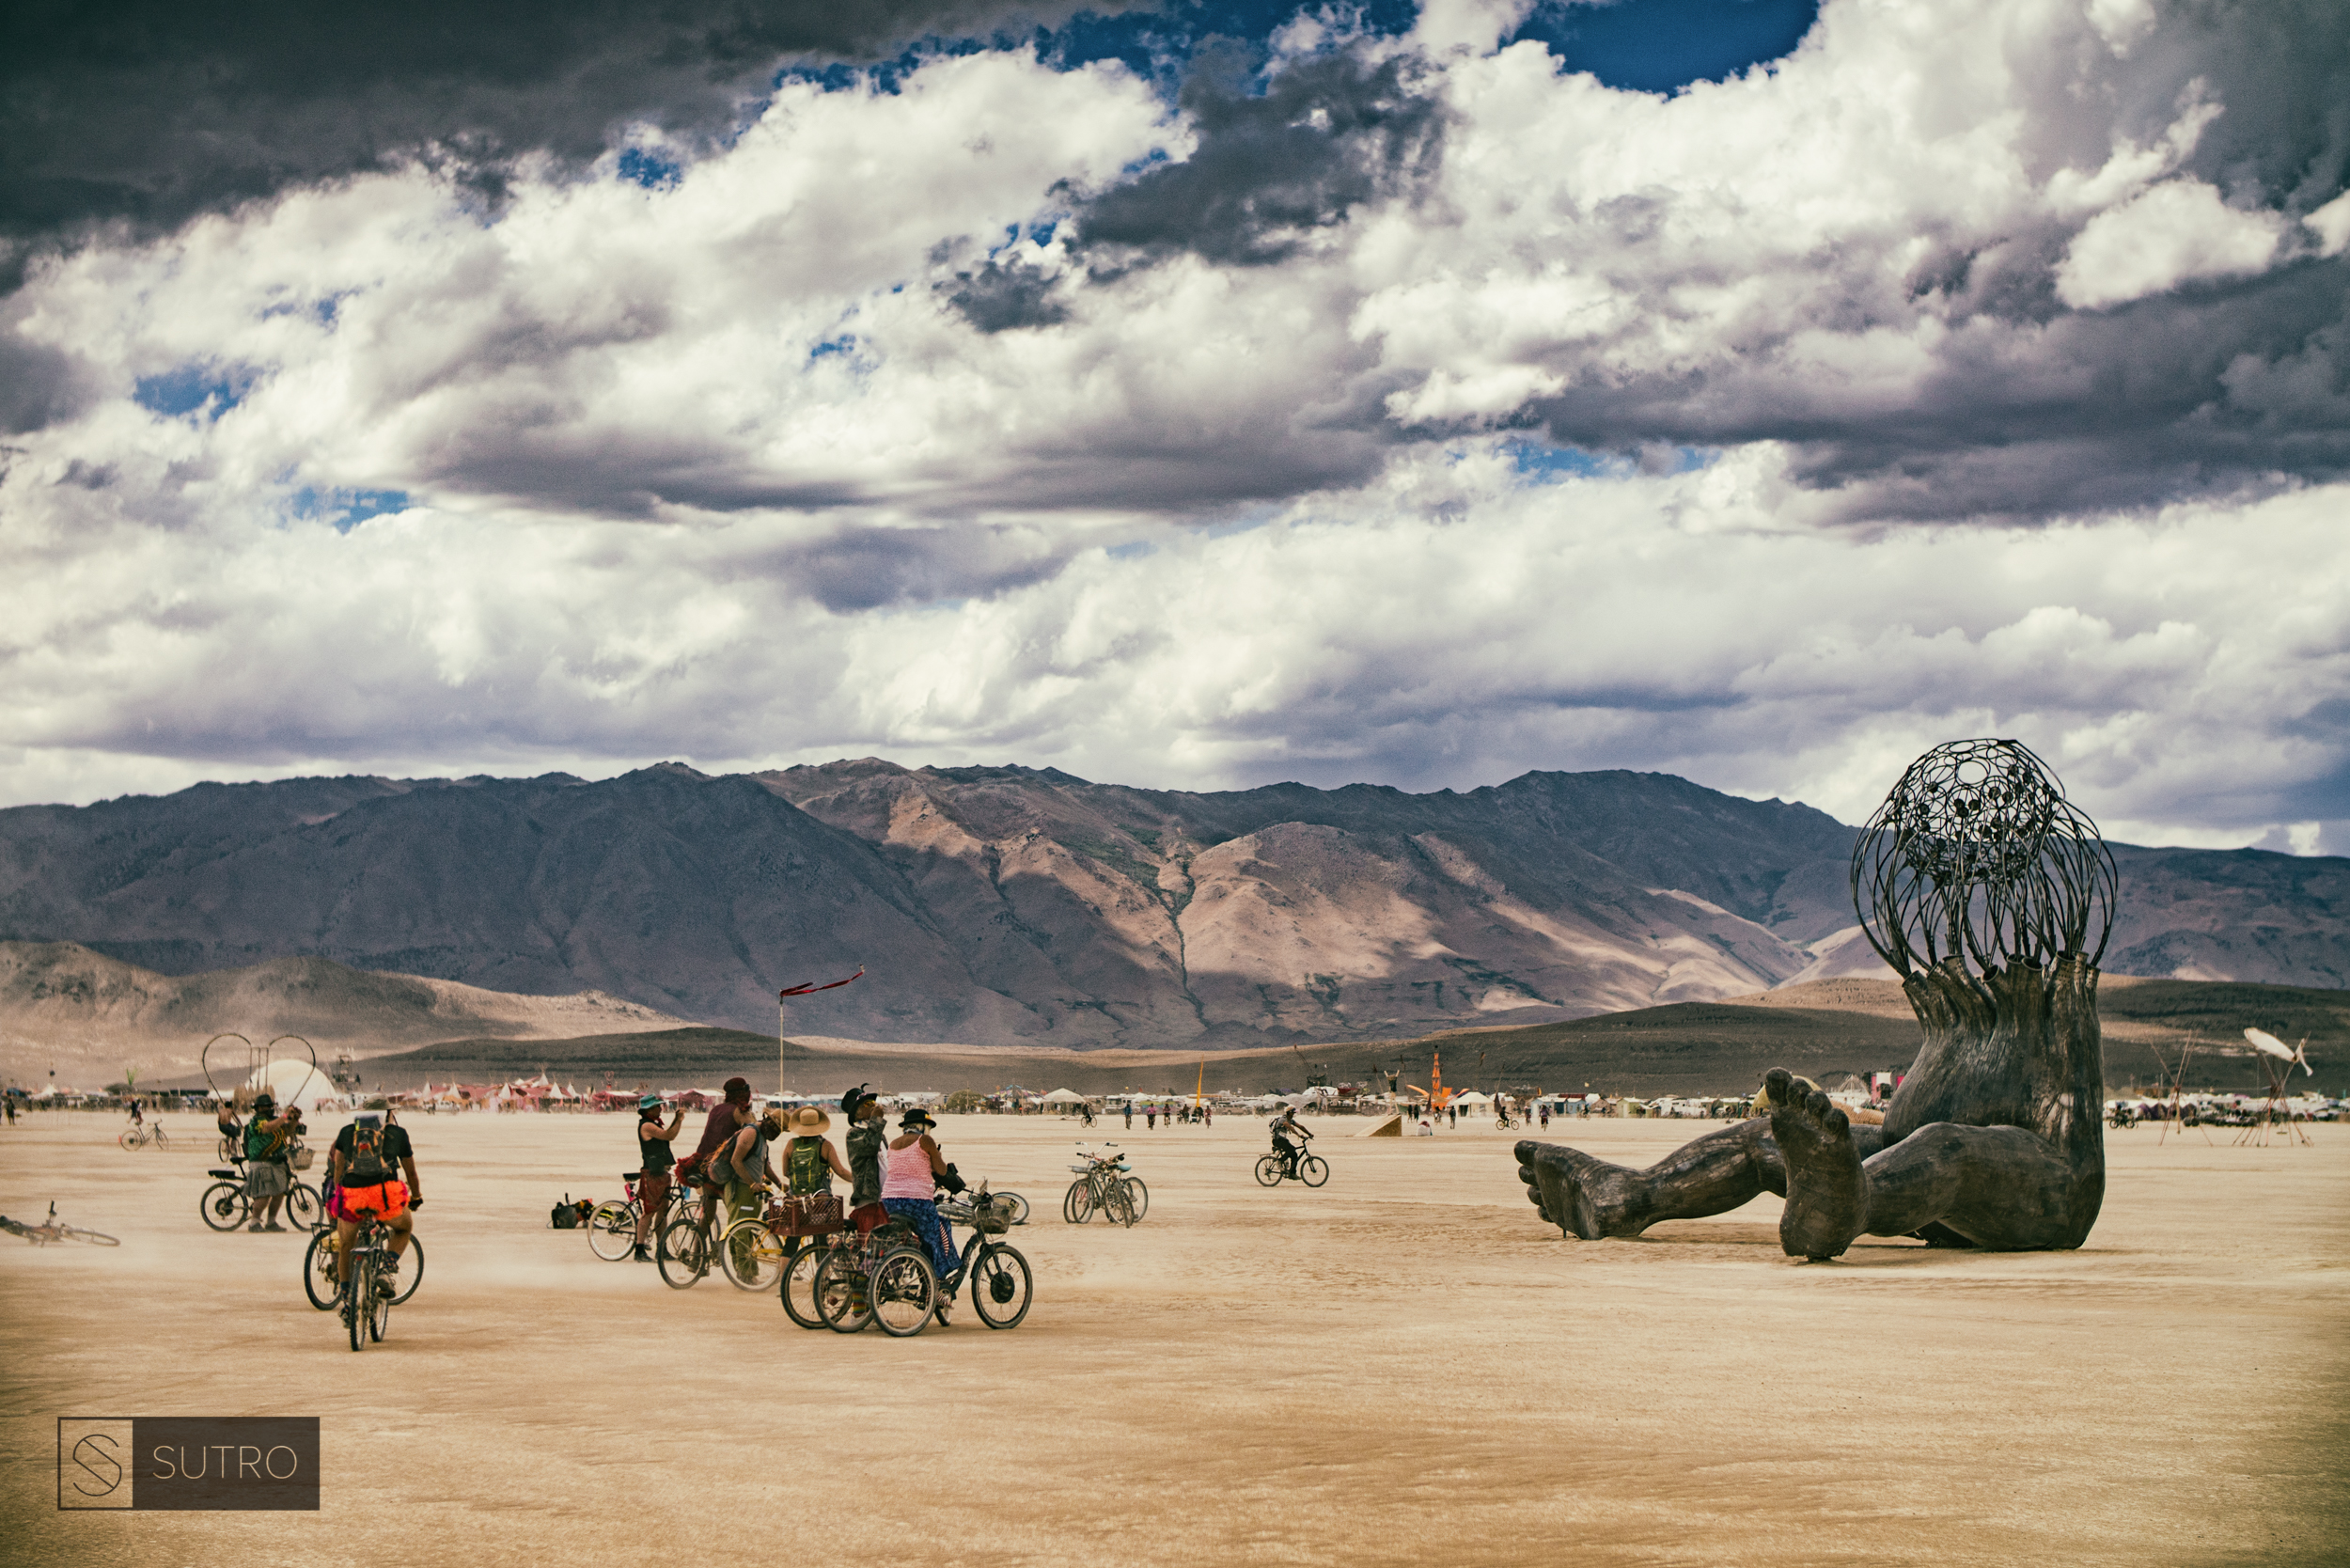 """Burners admire on the many pieces of artwork on the Playa, this one by Michael Christian called """"Brainchild""""."""